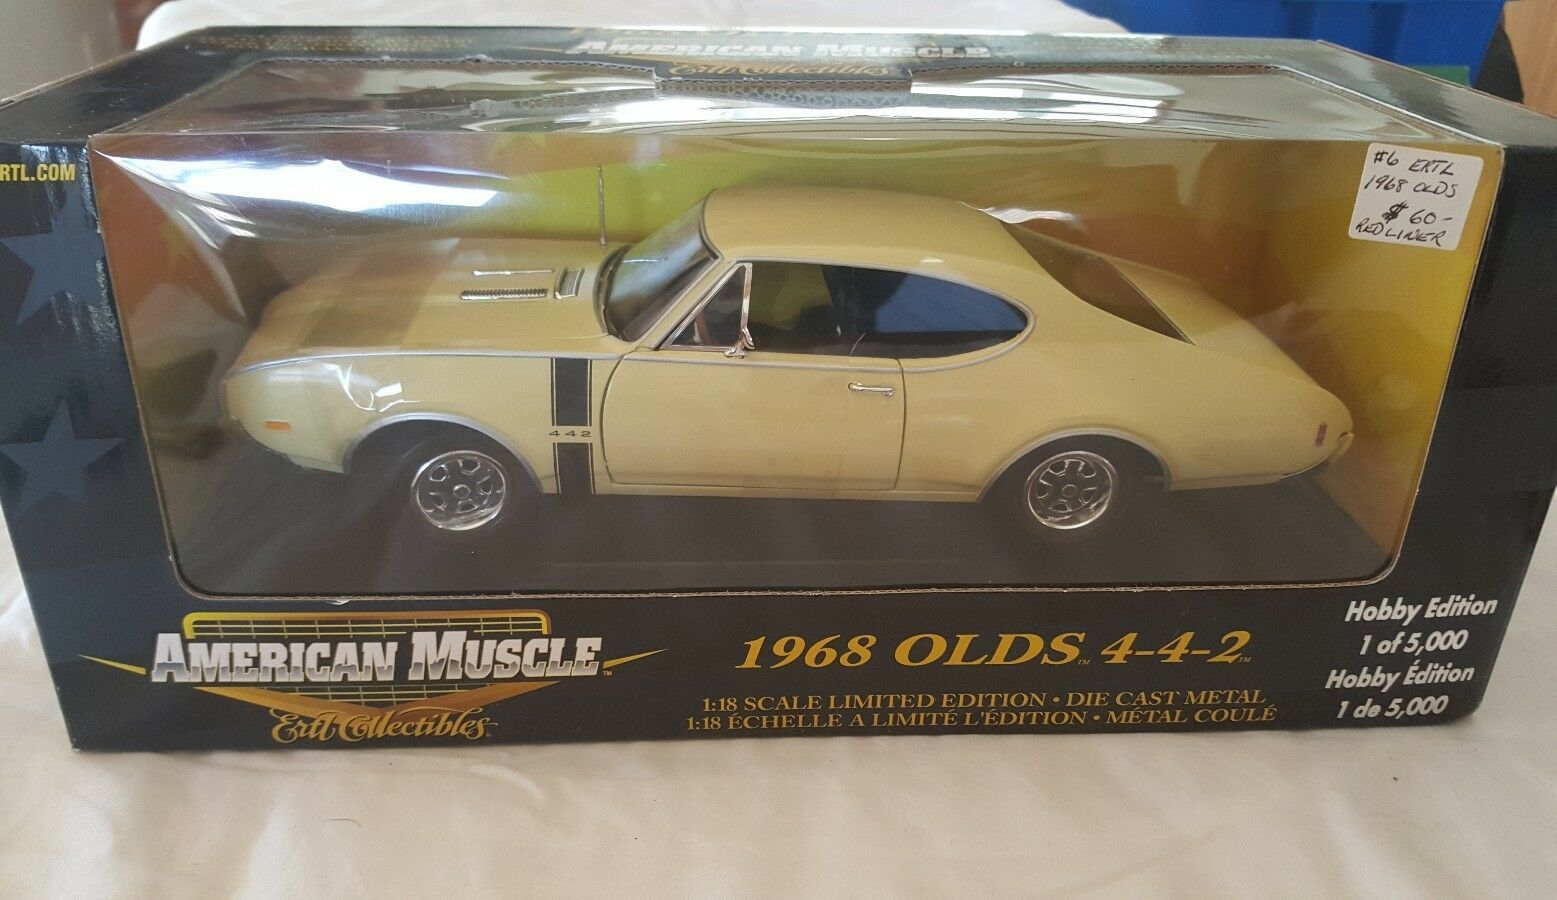 NEW ERTL COLLECTIBLES AMERICAN MUSCLE 1968 OLDS 4-4-2 4-4-2 4-4-2  (OF 5000)  1 18 SCALE 369f1d